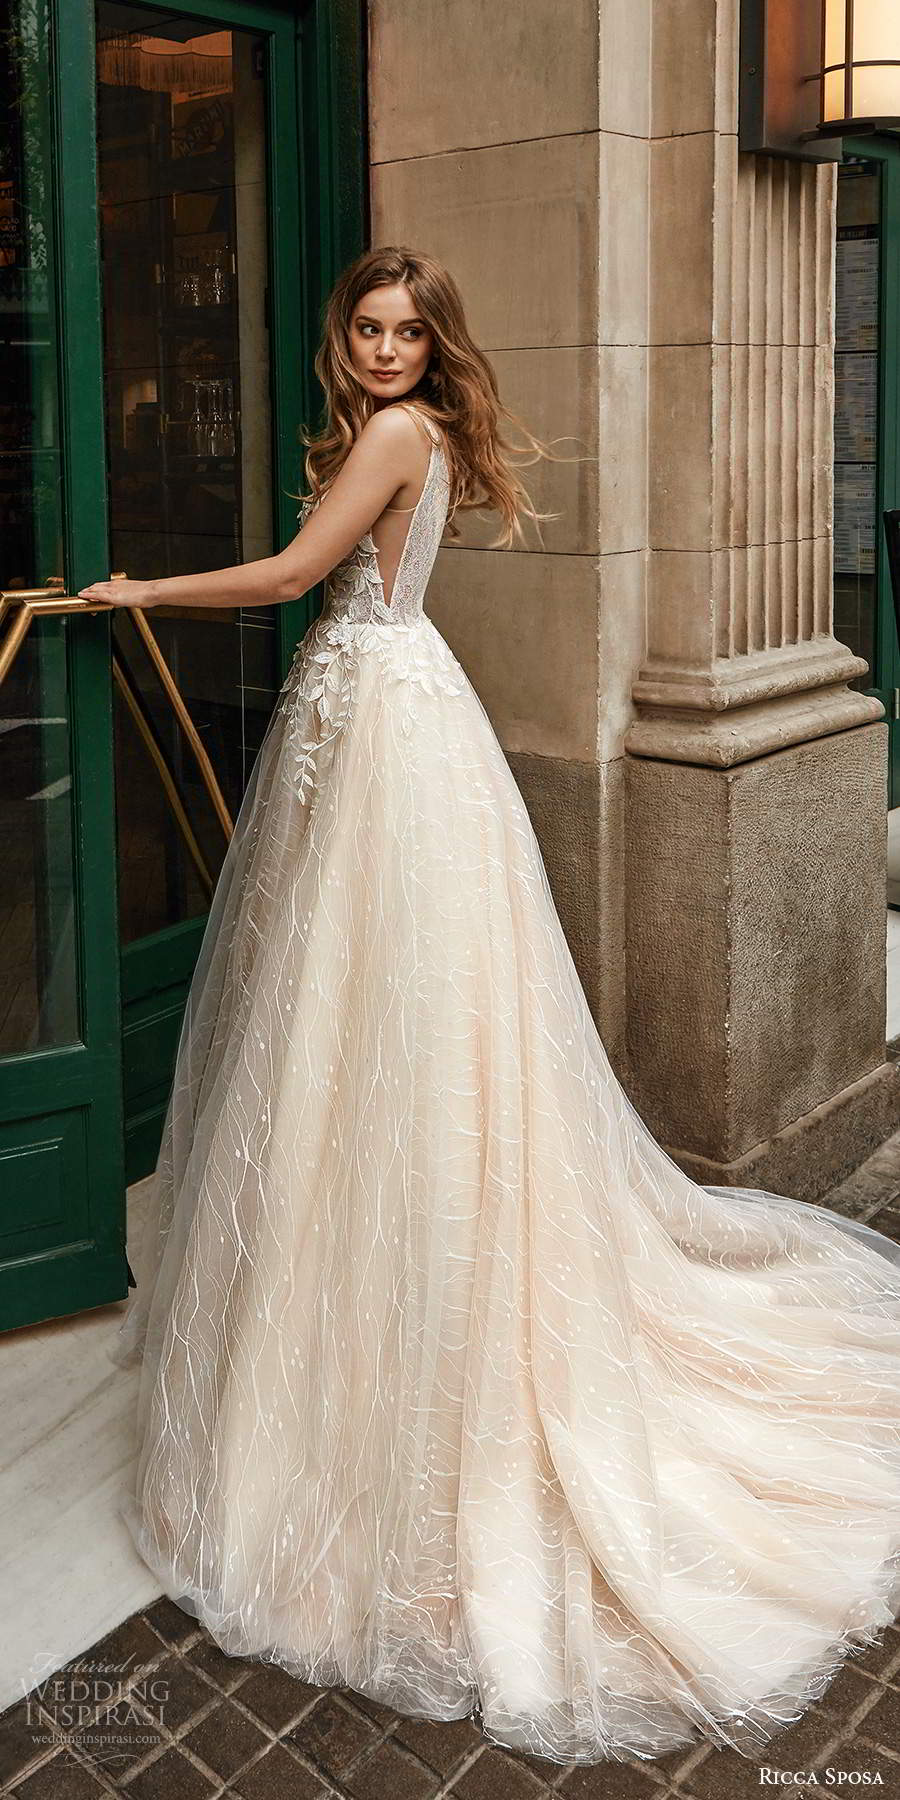 ricca sposa 2020 barcelona bridal sleeveless thick straps sweetheart neckline heavily embellished bodice a line ball gown wedding dress chapel train (17) sv